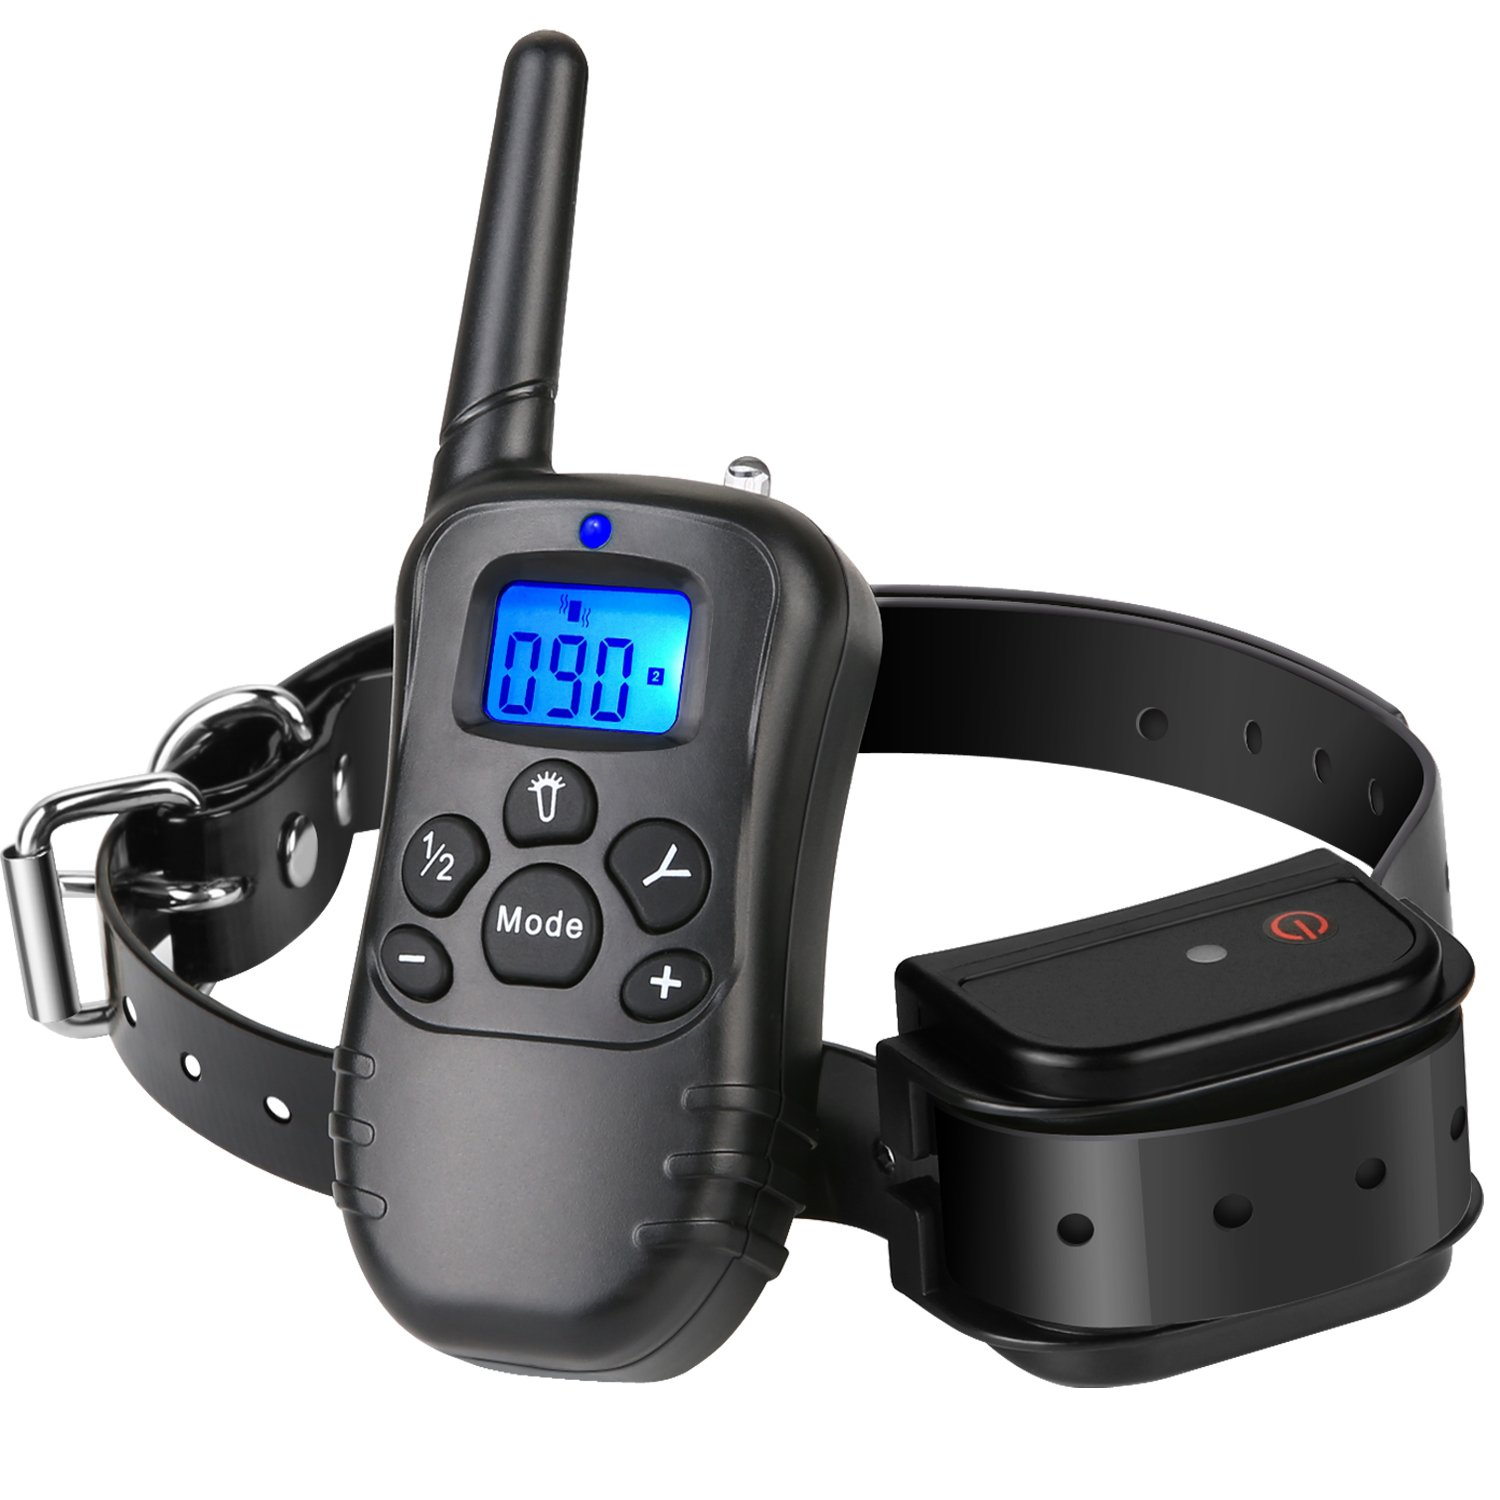 Dog Training Collar with Remote Control 100% Waterproof Rechargeable 900 ft No Bark Collar for Small Medium Large Dogs Beep Vibration Electric Dog Shock Collar